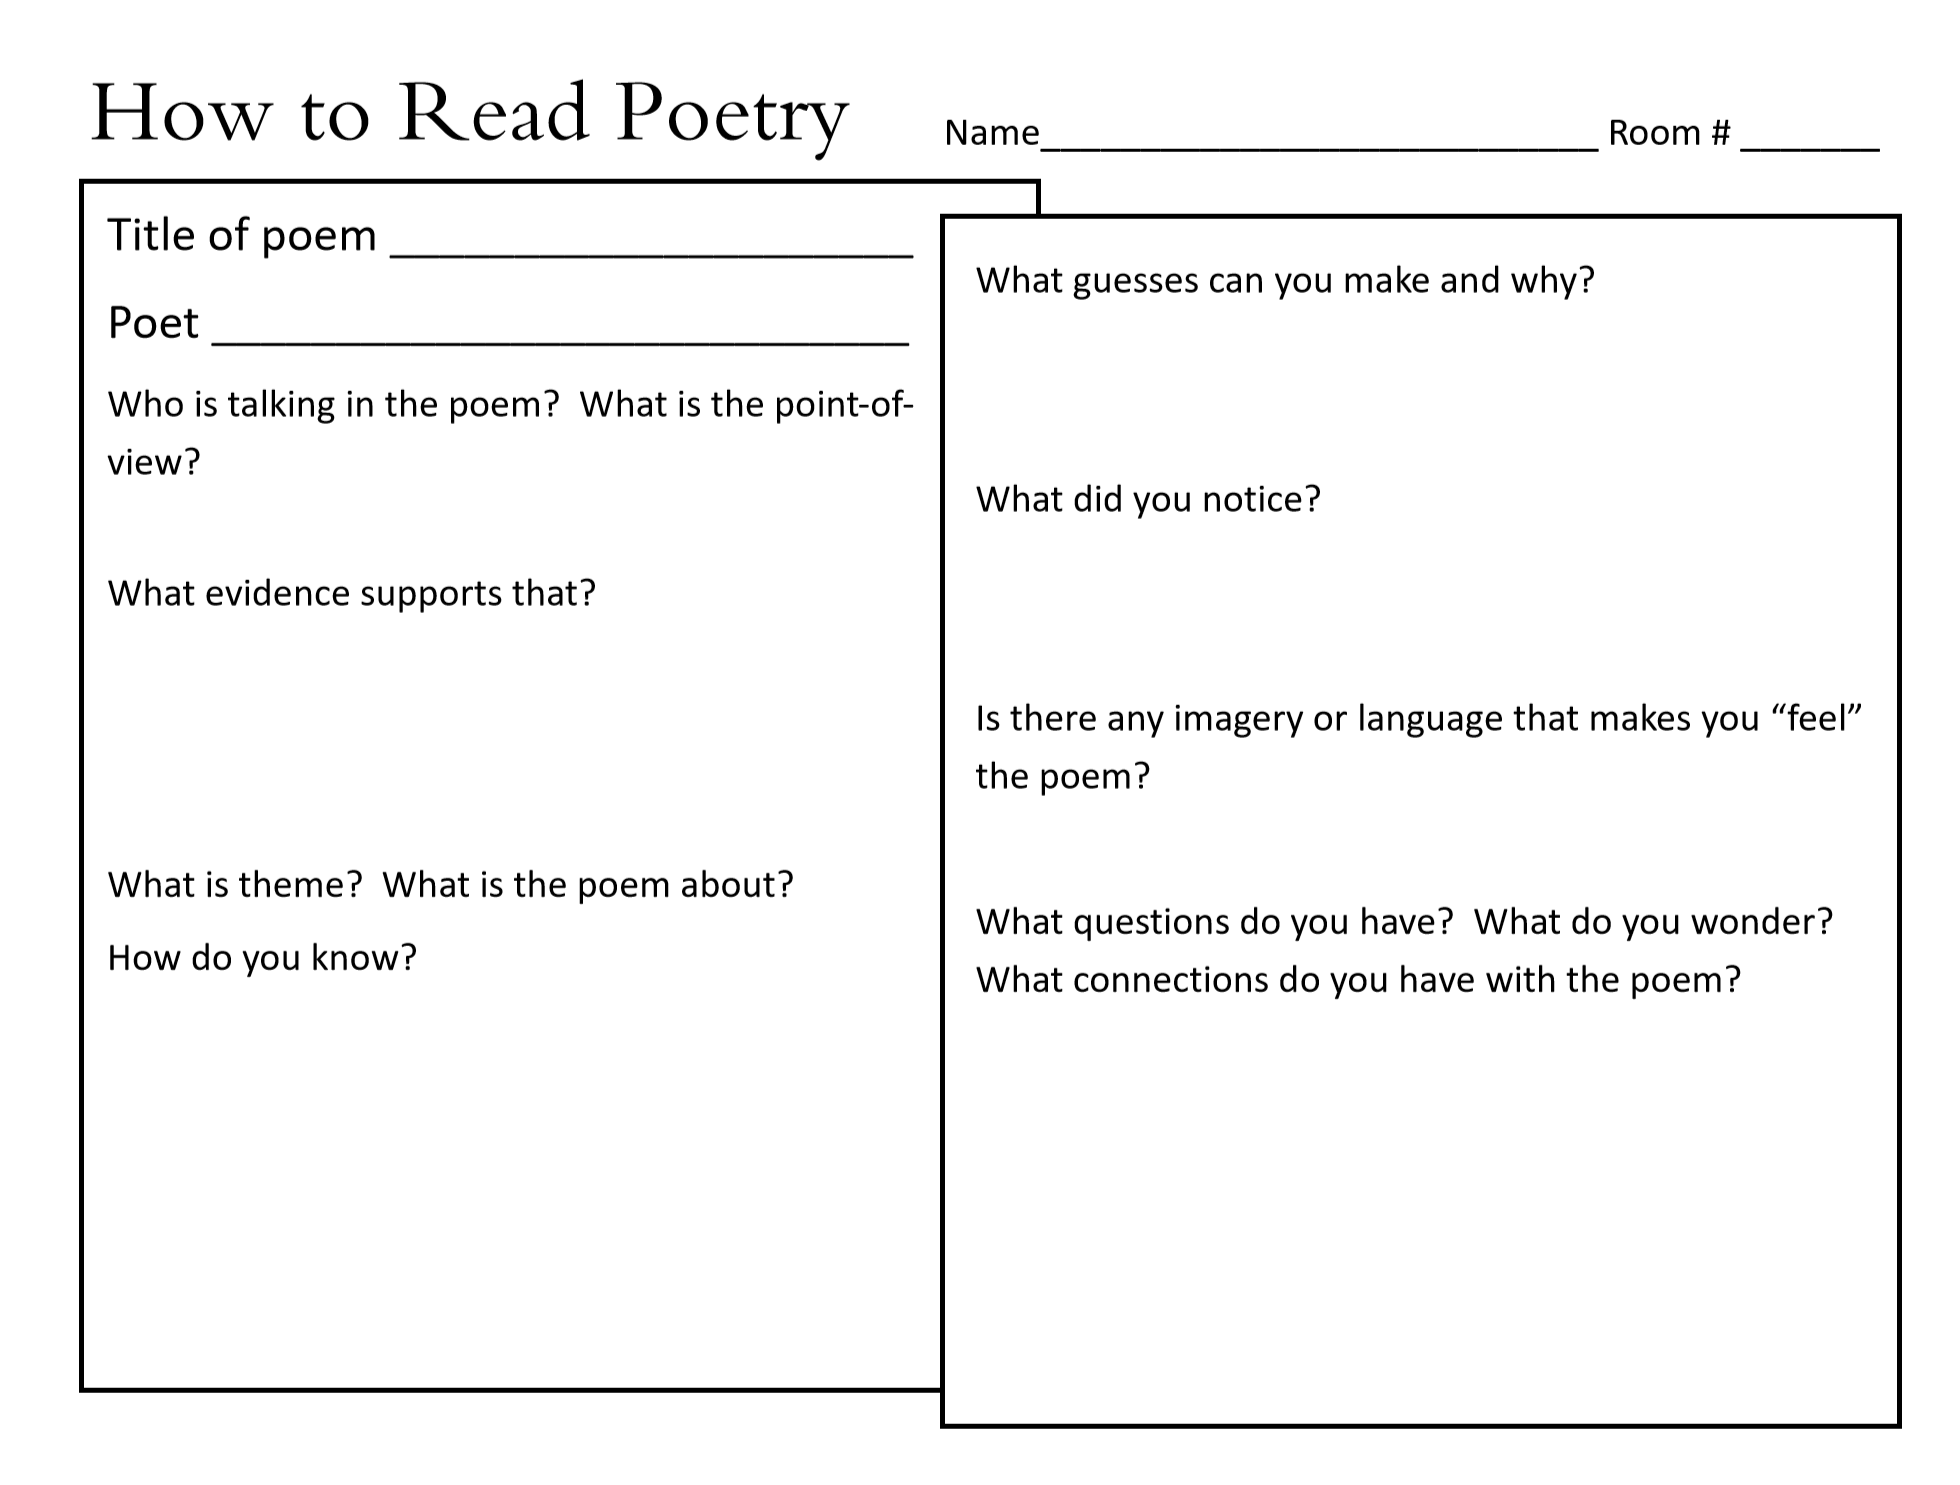 hight resolution of How to Read Poetry is a graphic organizer designed to help students analyze  poetry.   Poetry graphic organizers